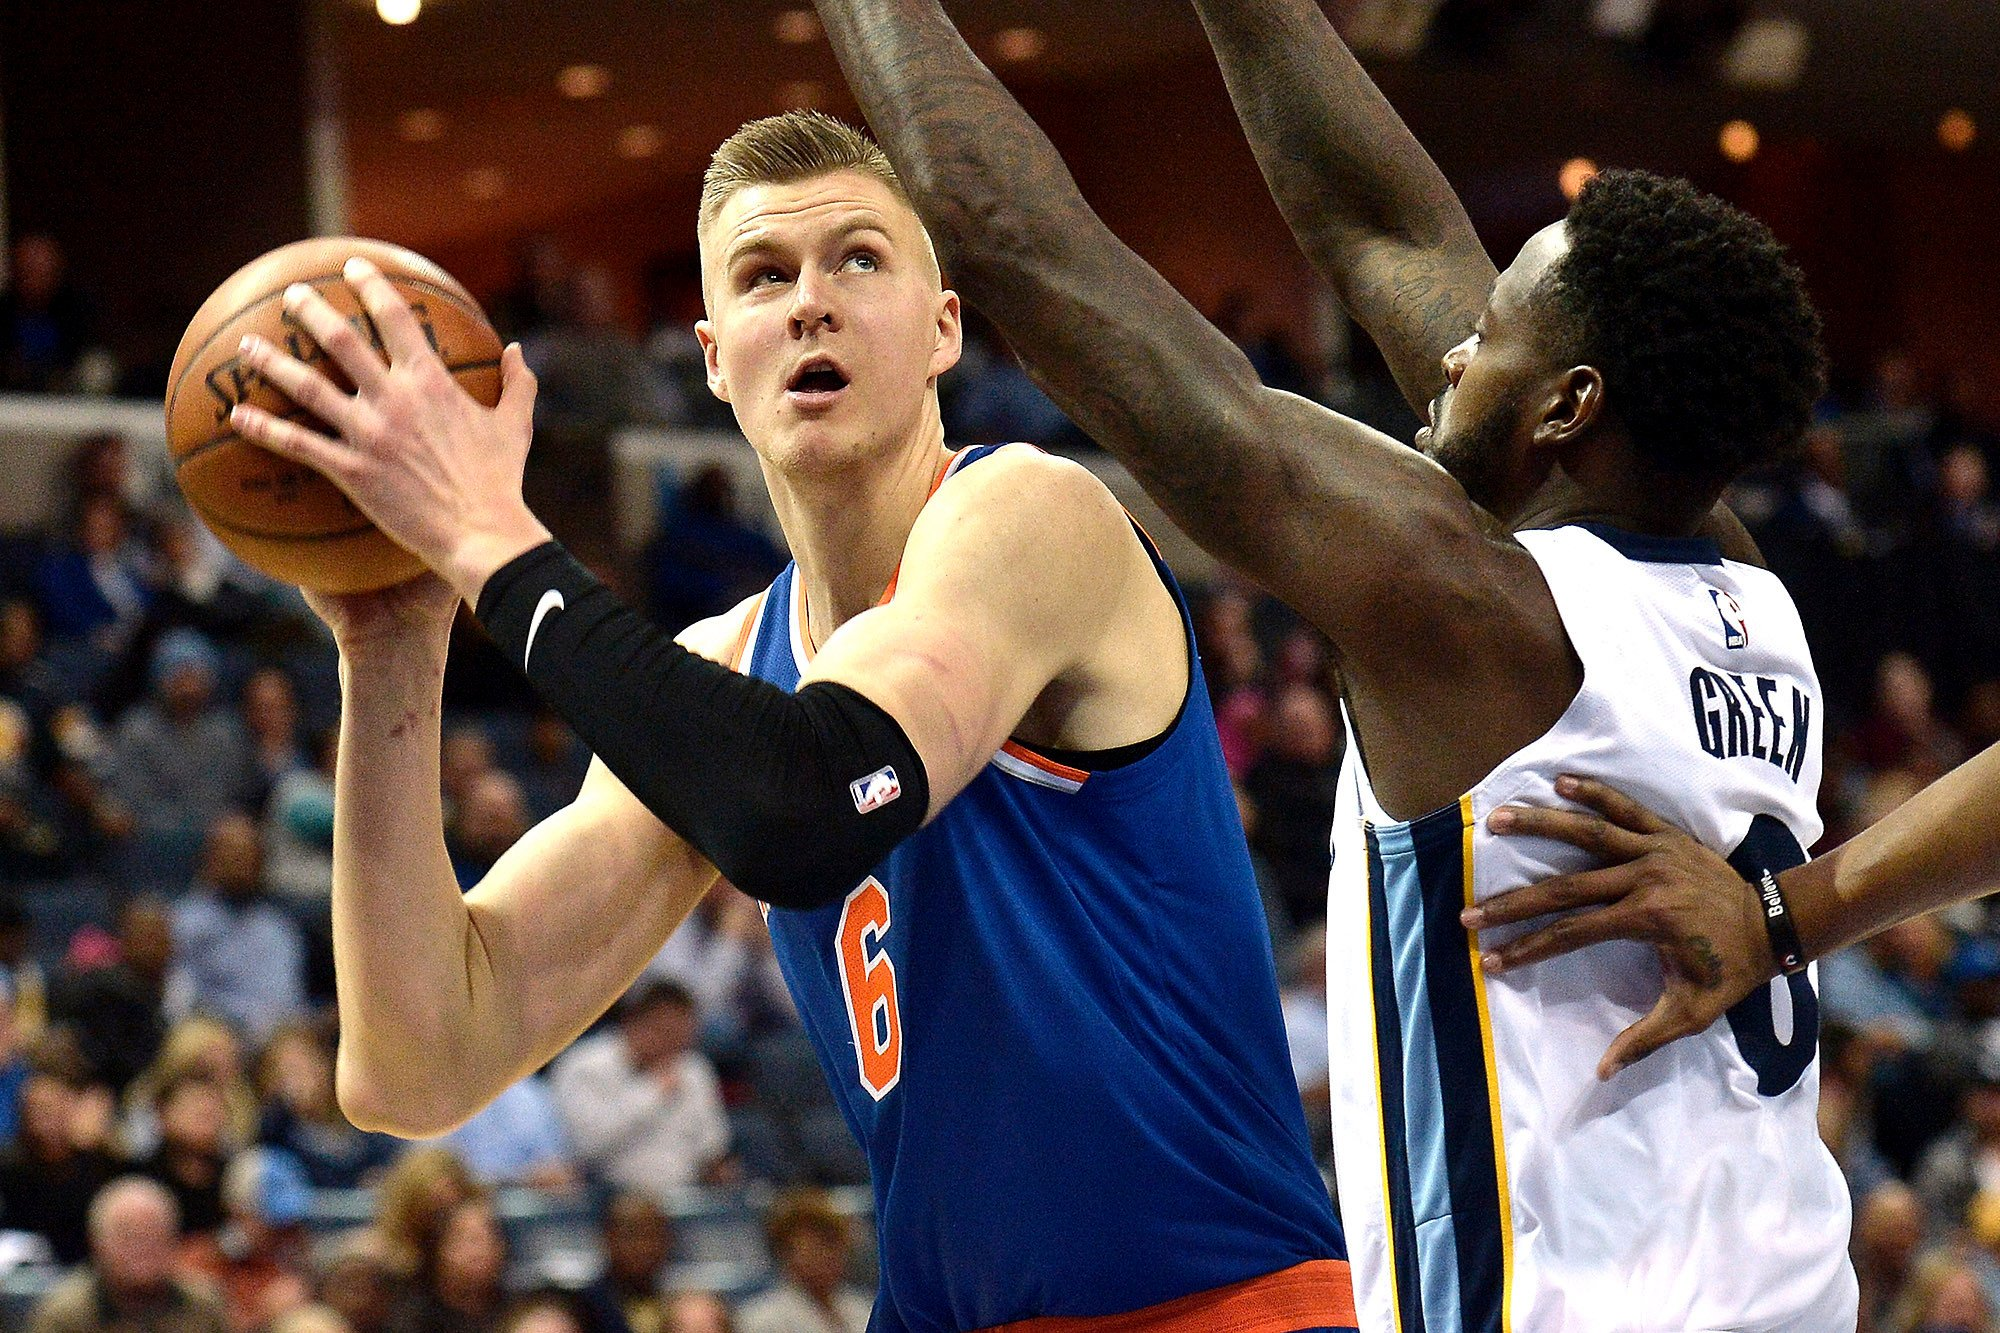 Kristaps Porzingis out after injuring knee in practice